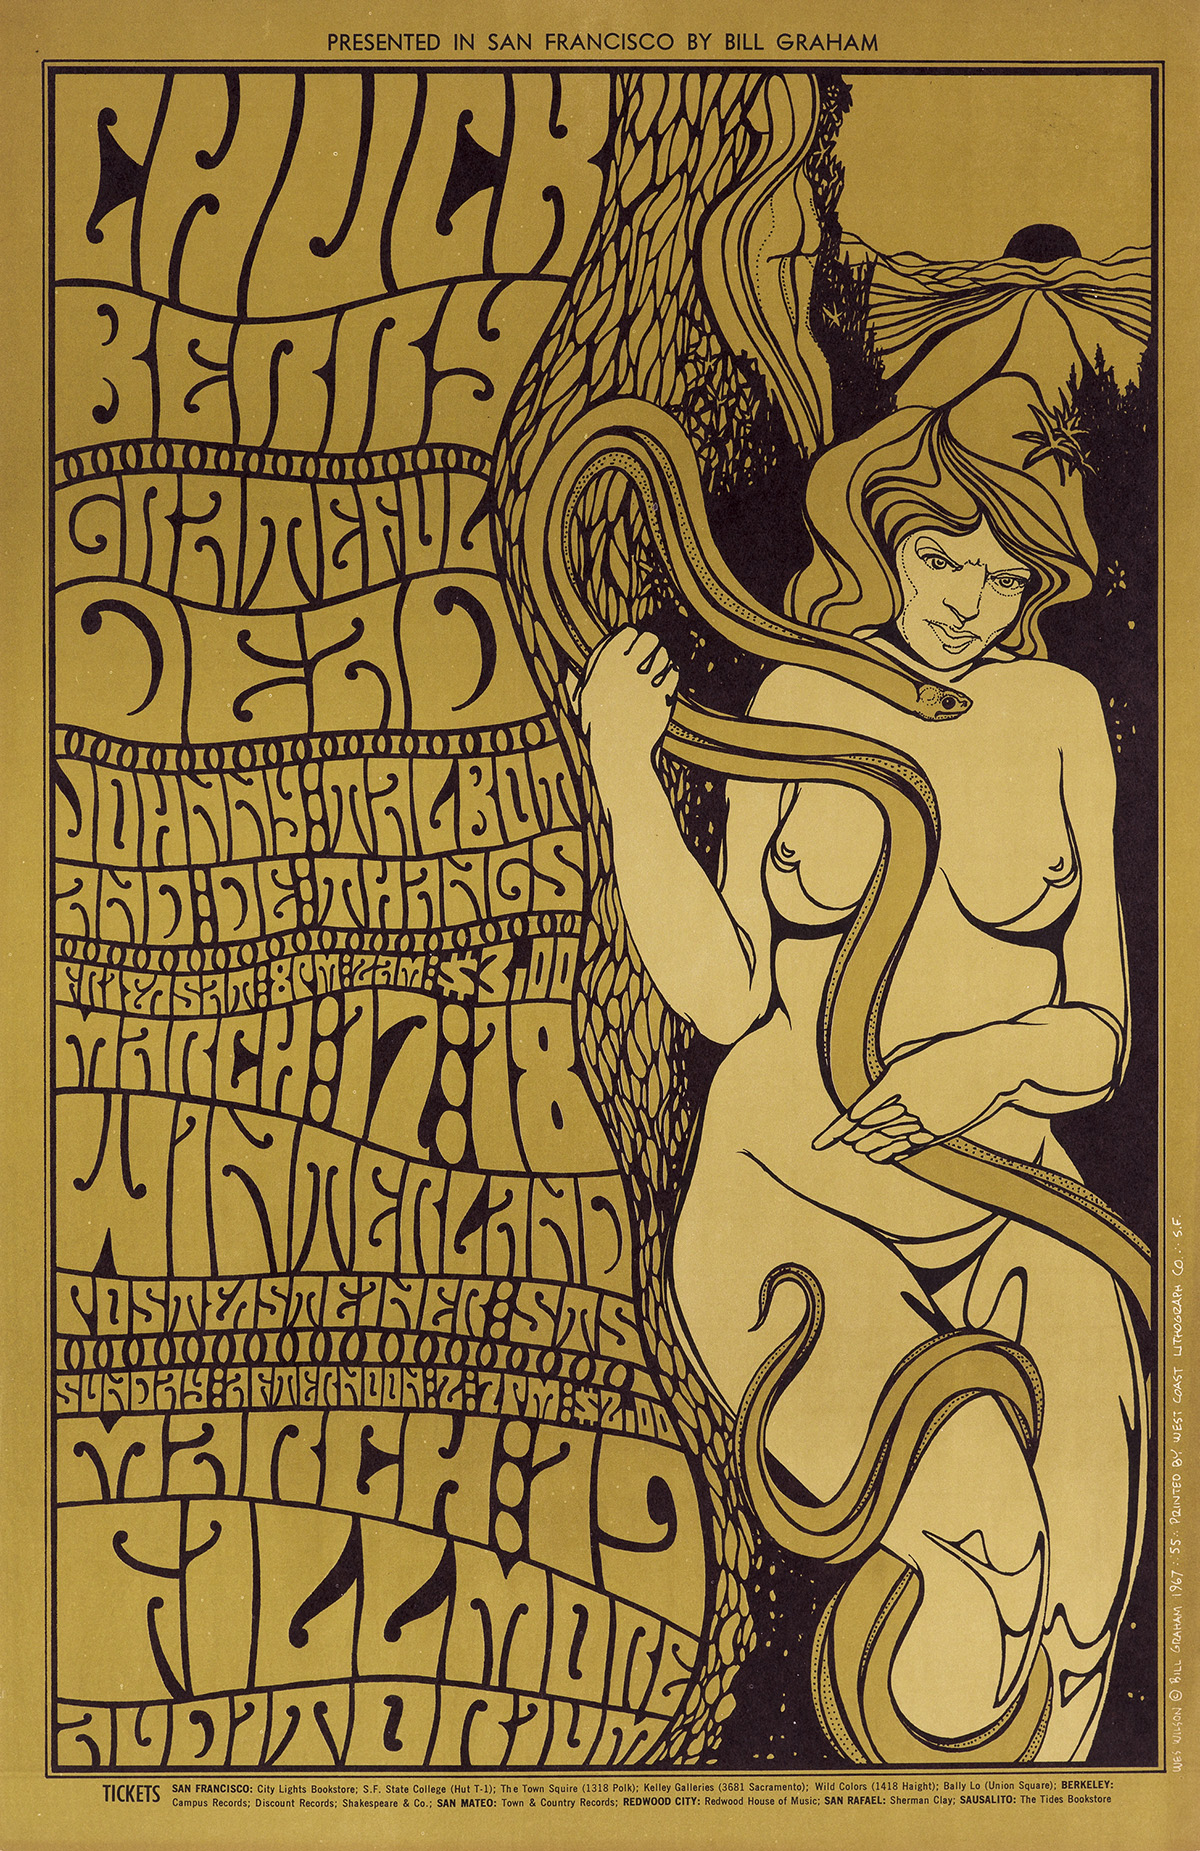 WES-WILSON-(1937--)-[PSYCHEDELIC-ROCK-CONCERTS]-Group-of-5-posters-1967-Sizes-vary